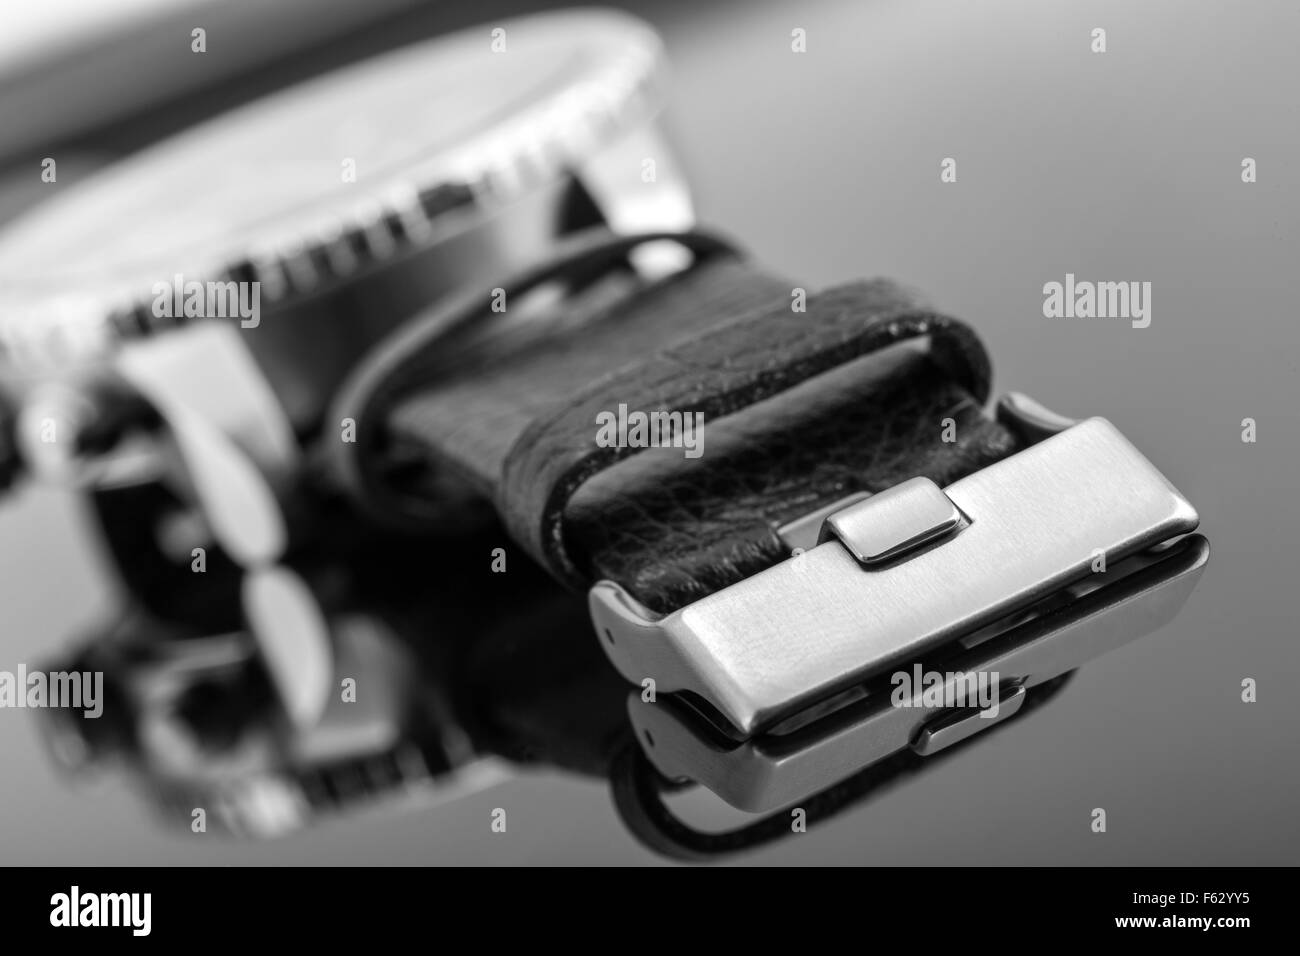 Macro view of latch on expensive watch - Stock Image